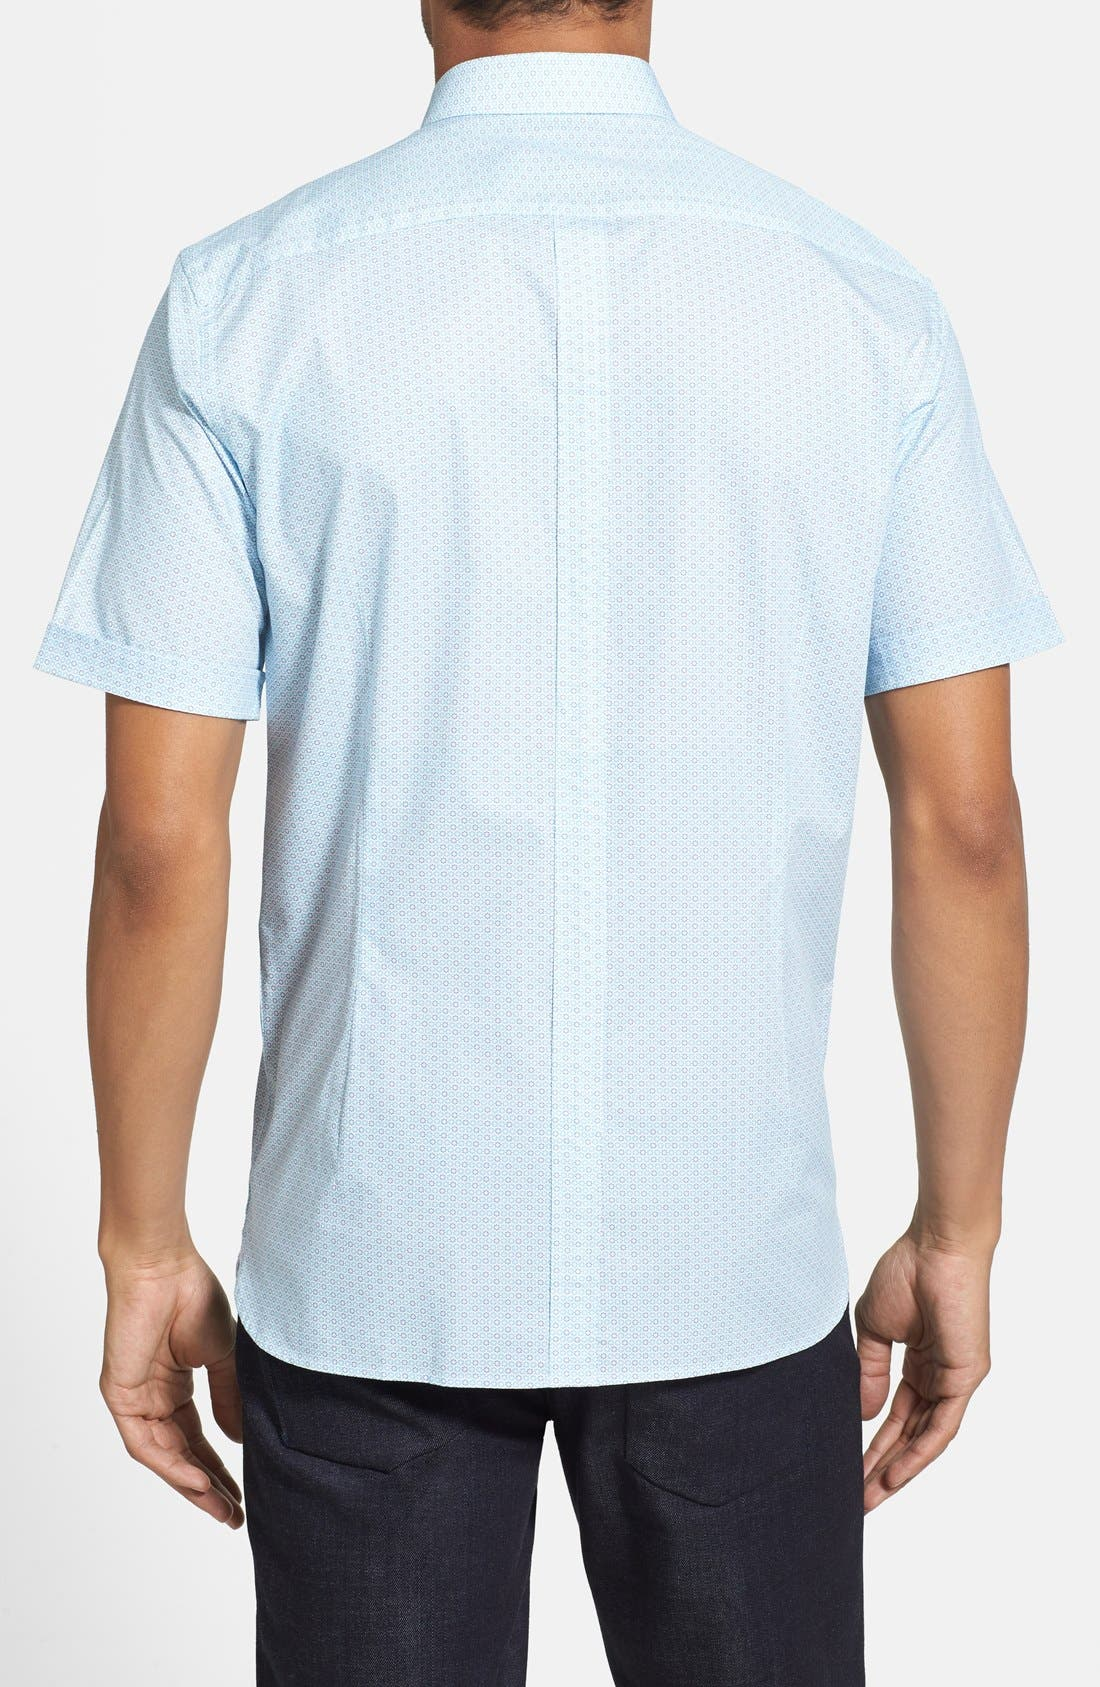 Alternate Image 2  - Report Collection Trim Fit Short Sleeve Sport Shirt